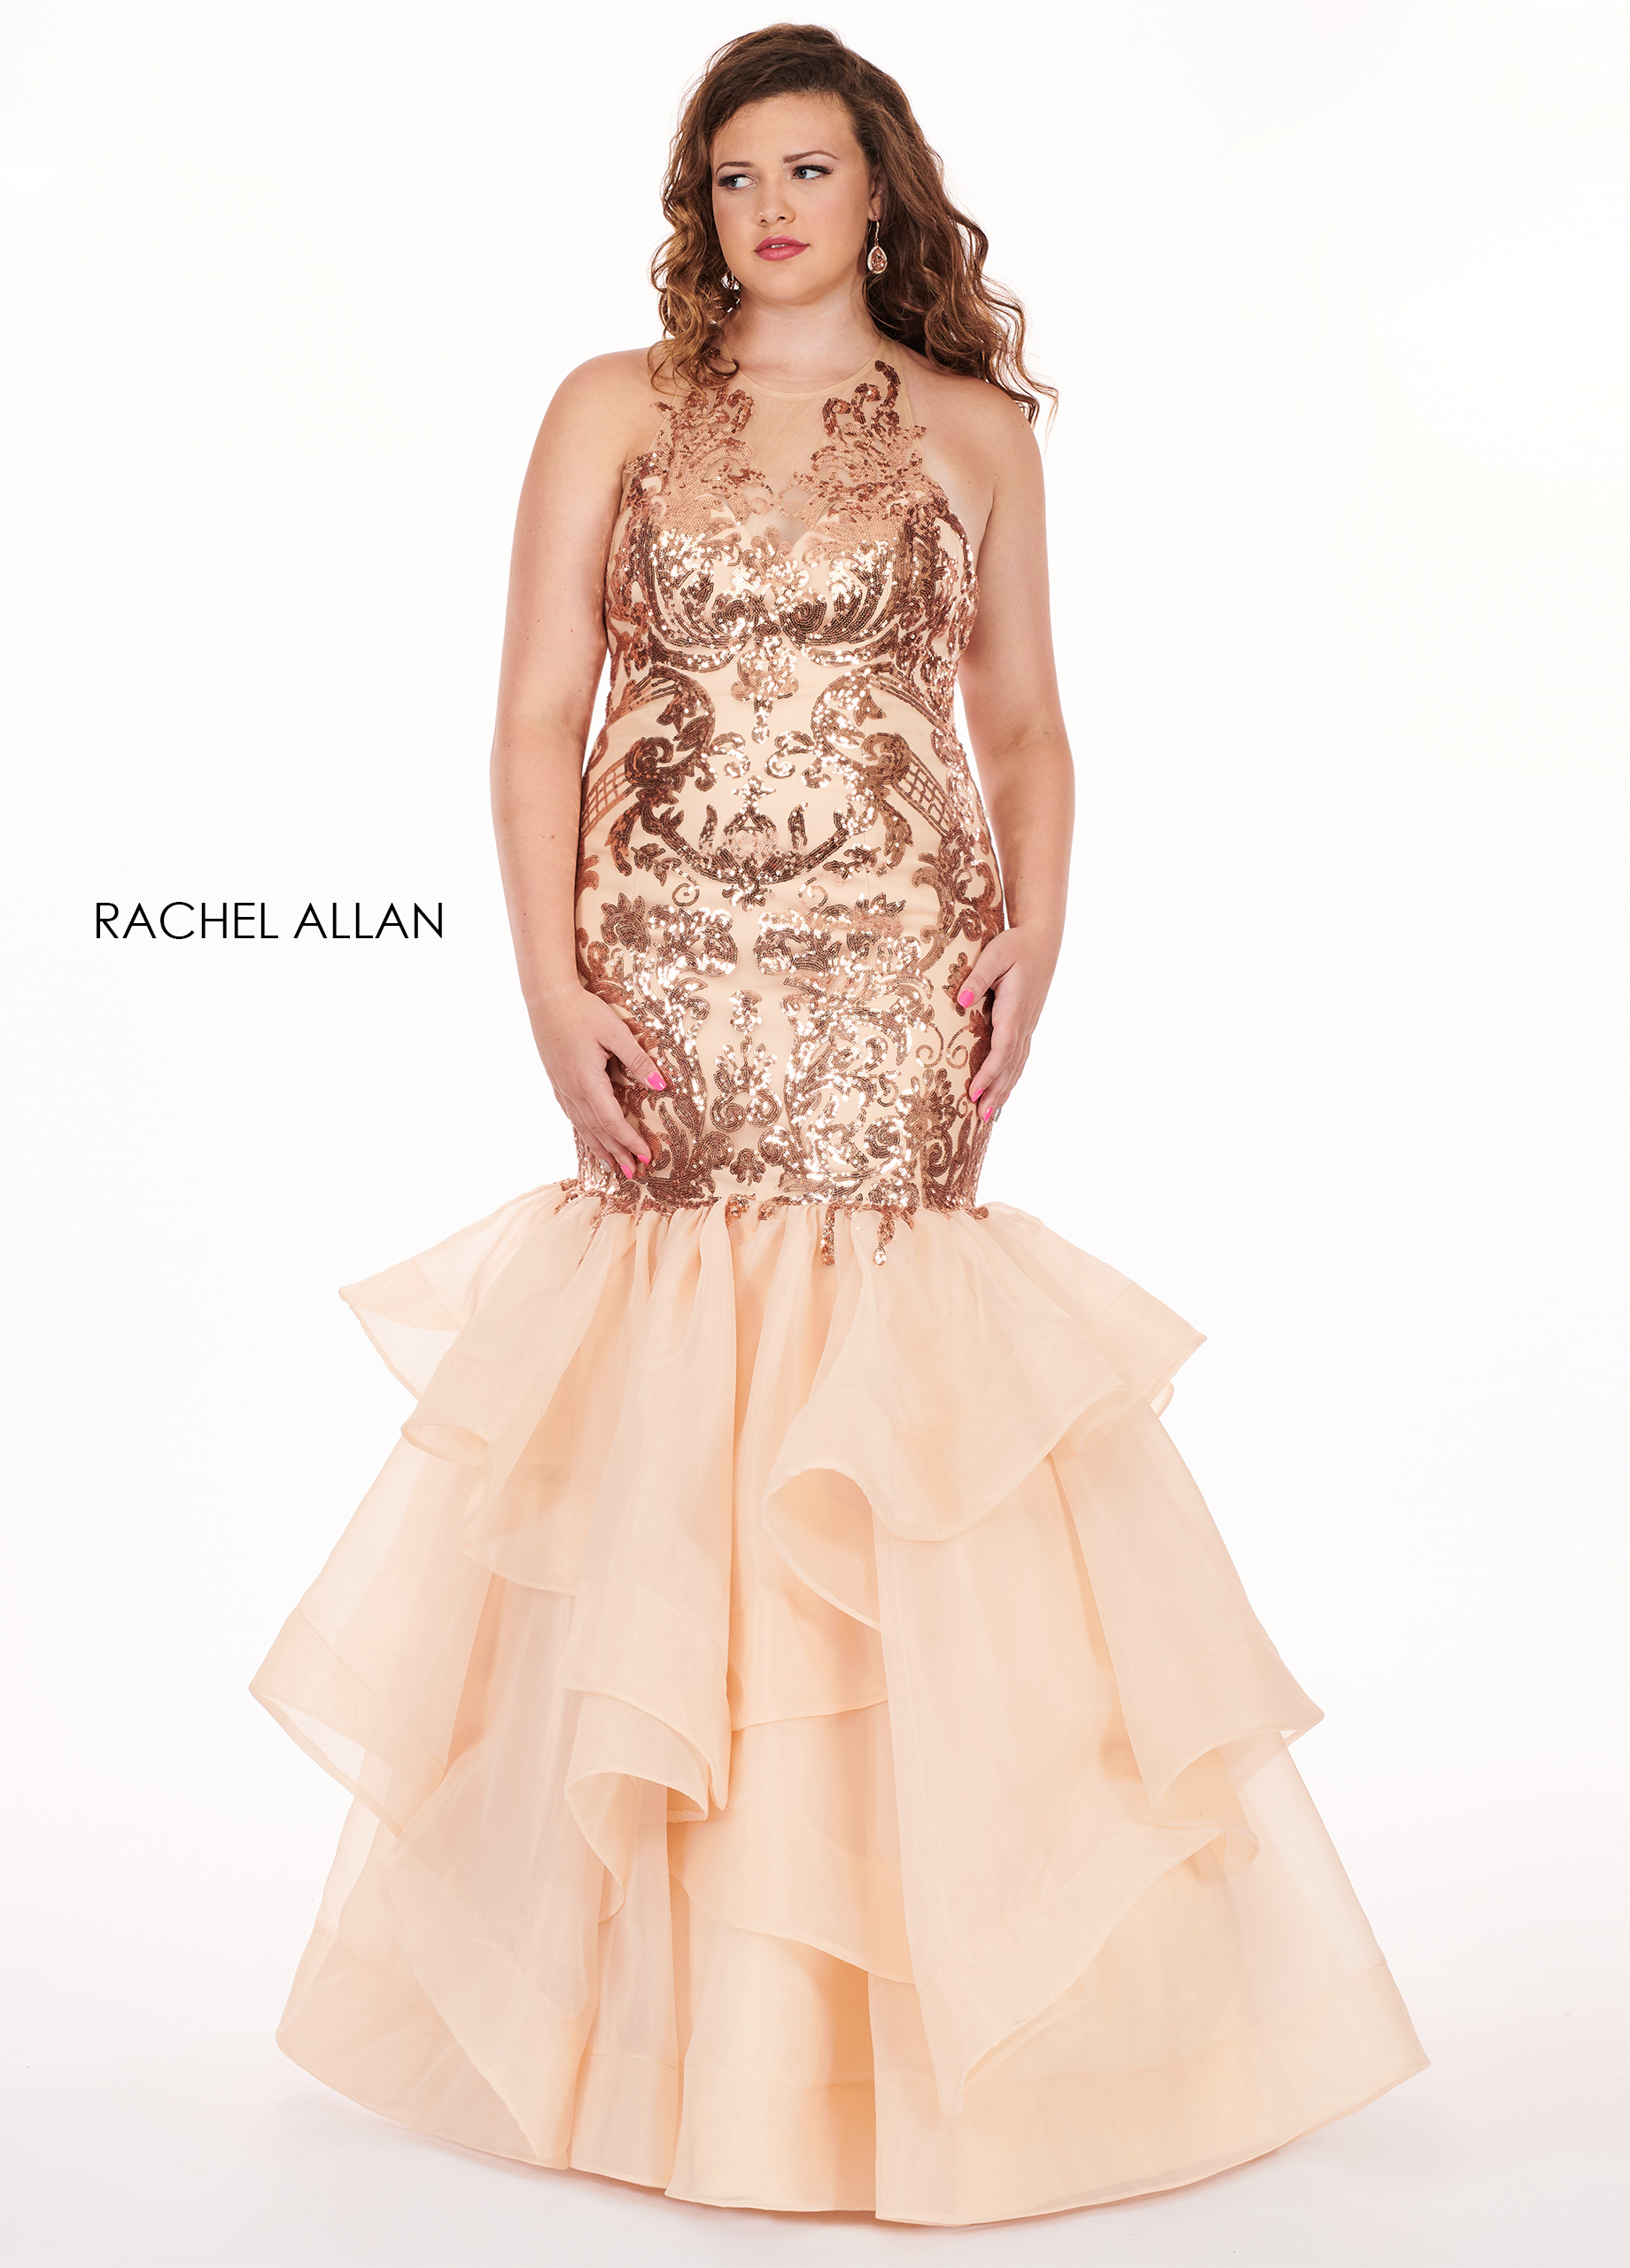 V-Neck A-Line Curves Dresses in Champagne Color | Style - 6688